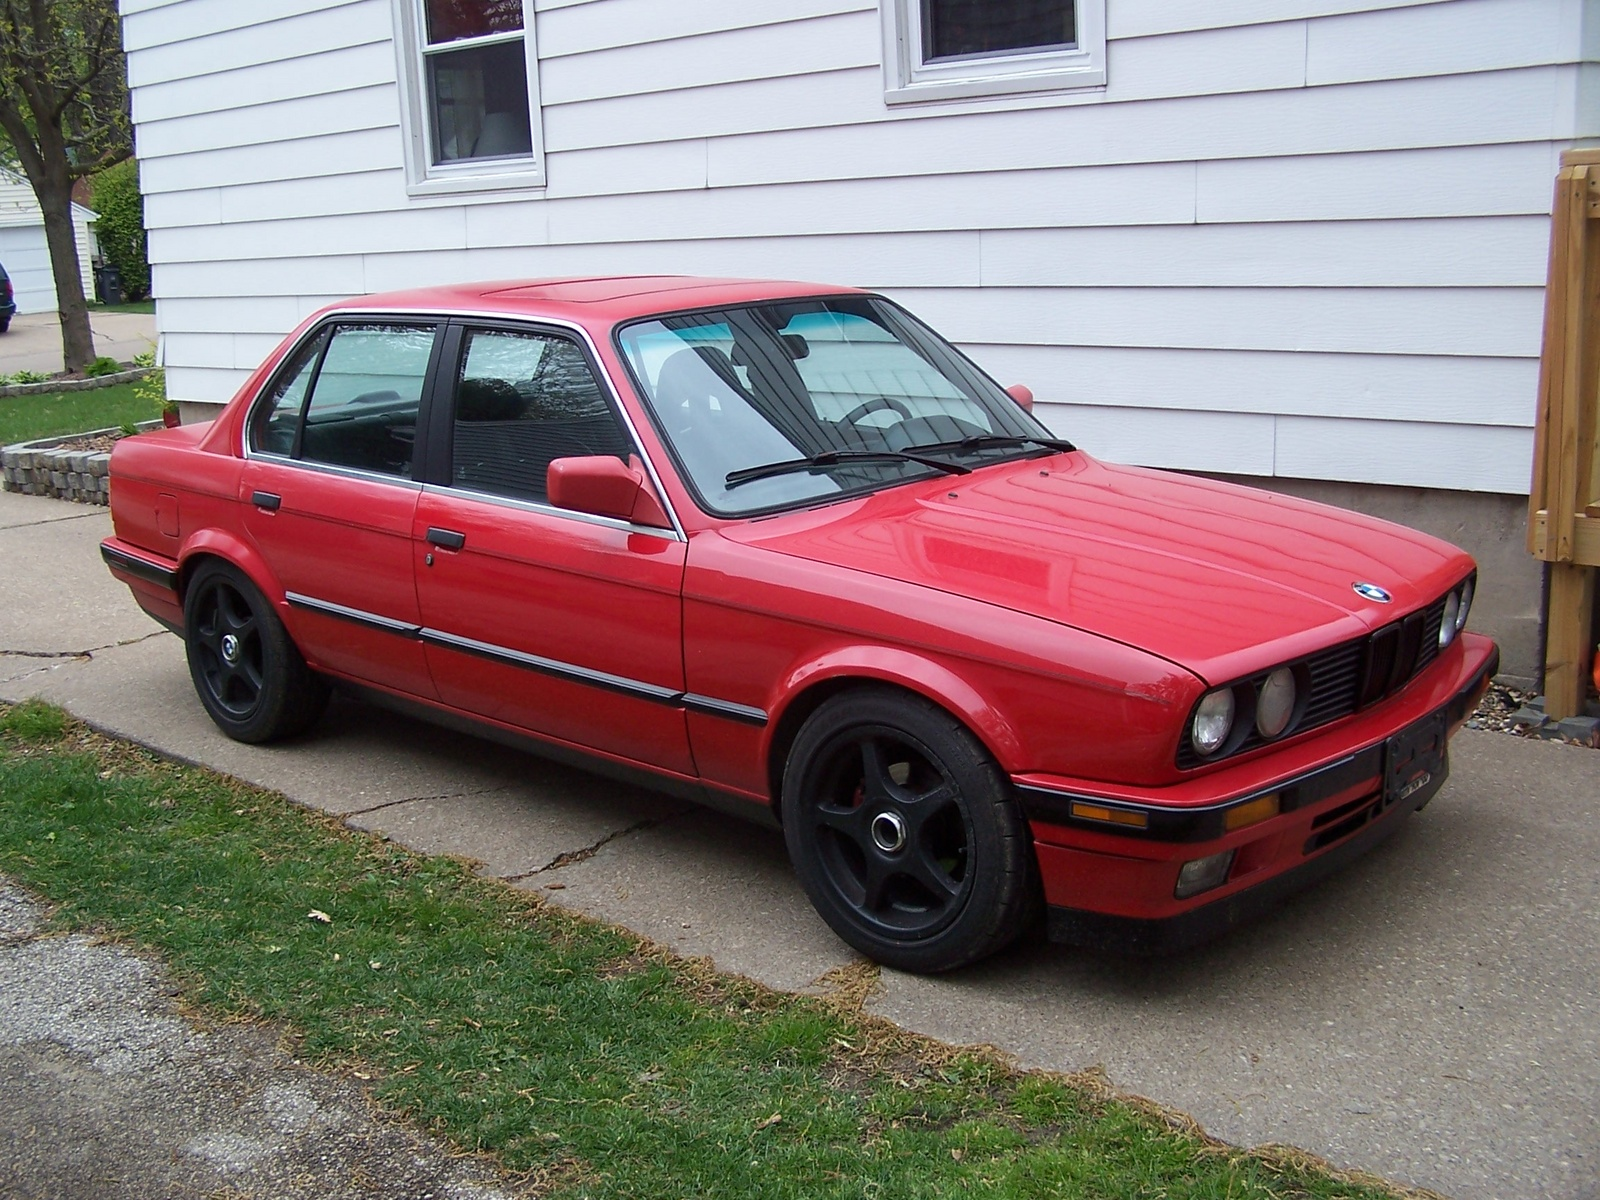 BMW 3 series 325e 1990 photo - 5